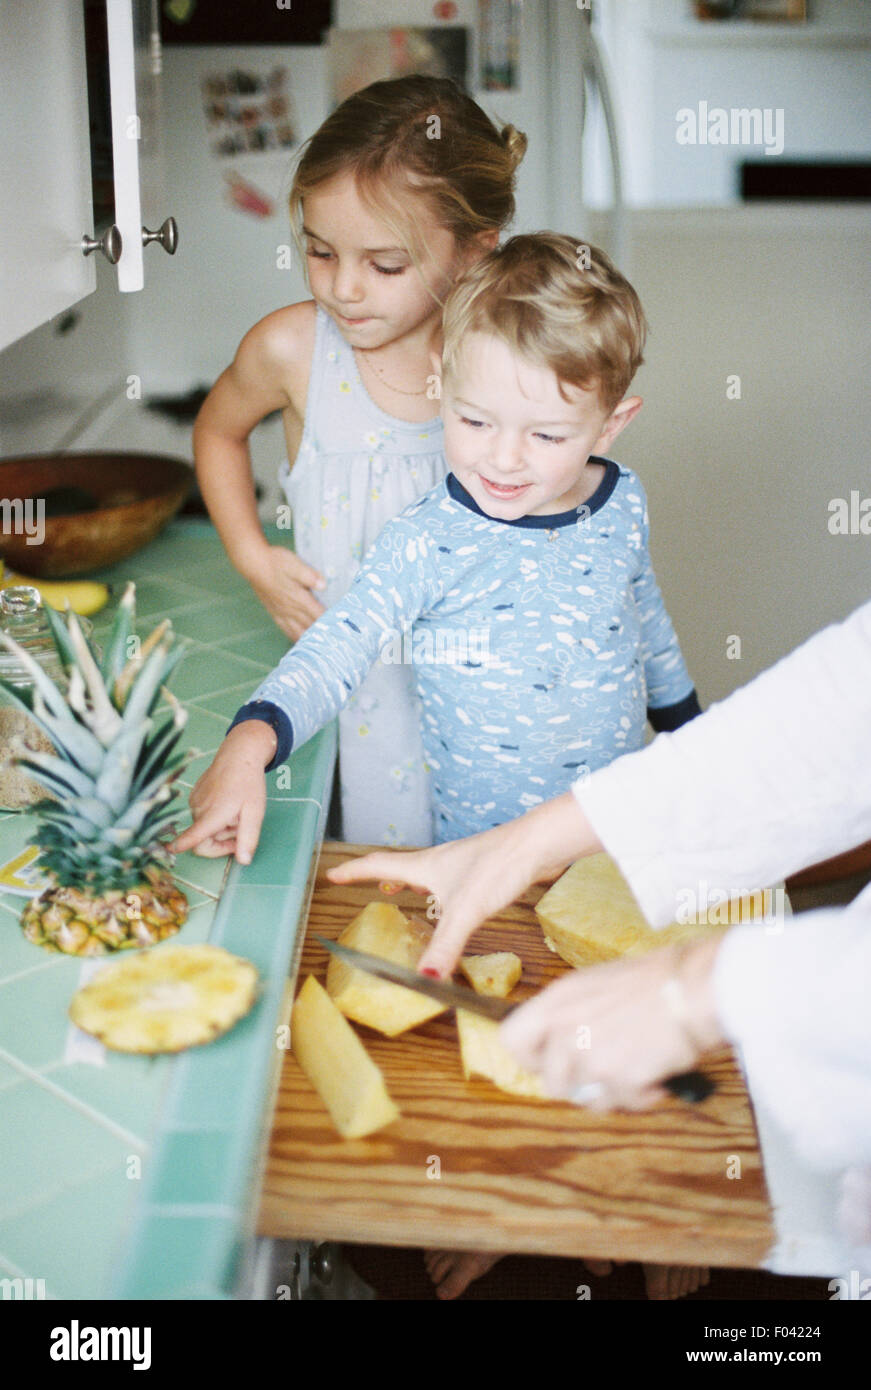 Woman cutting a fresh pineapple for her children. - Stock Image